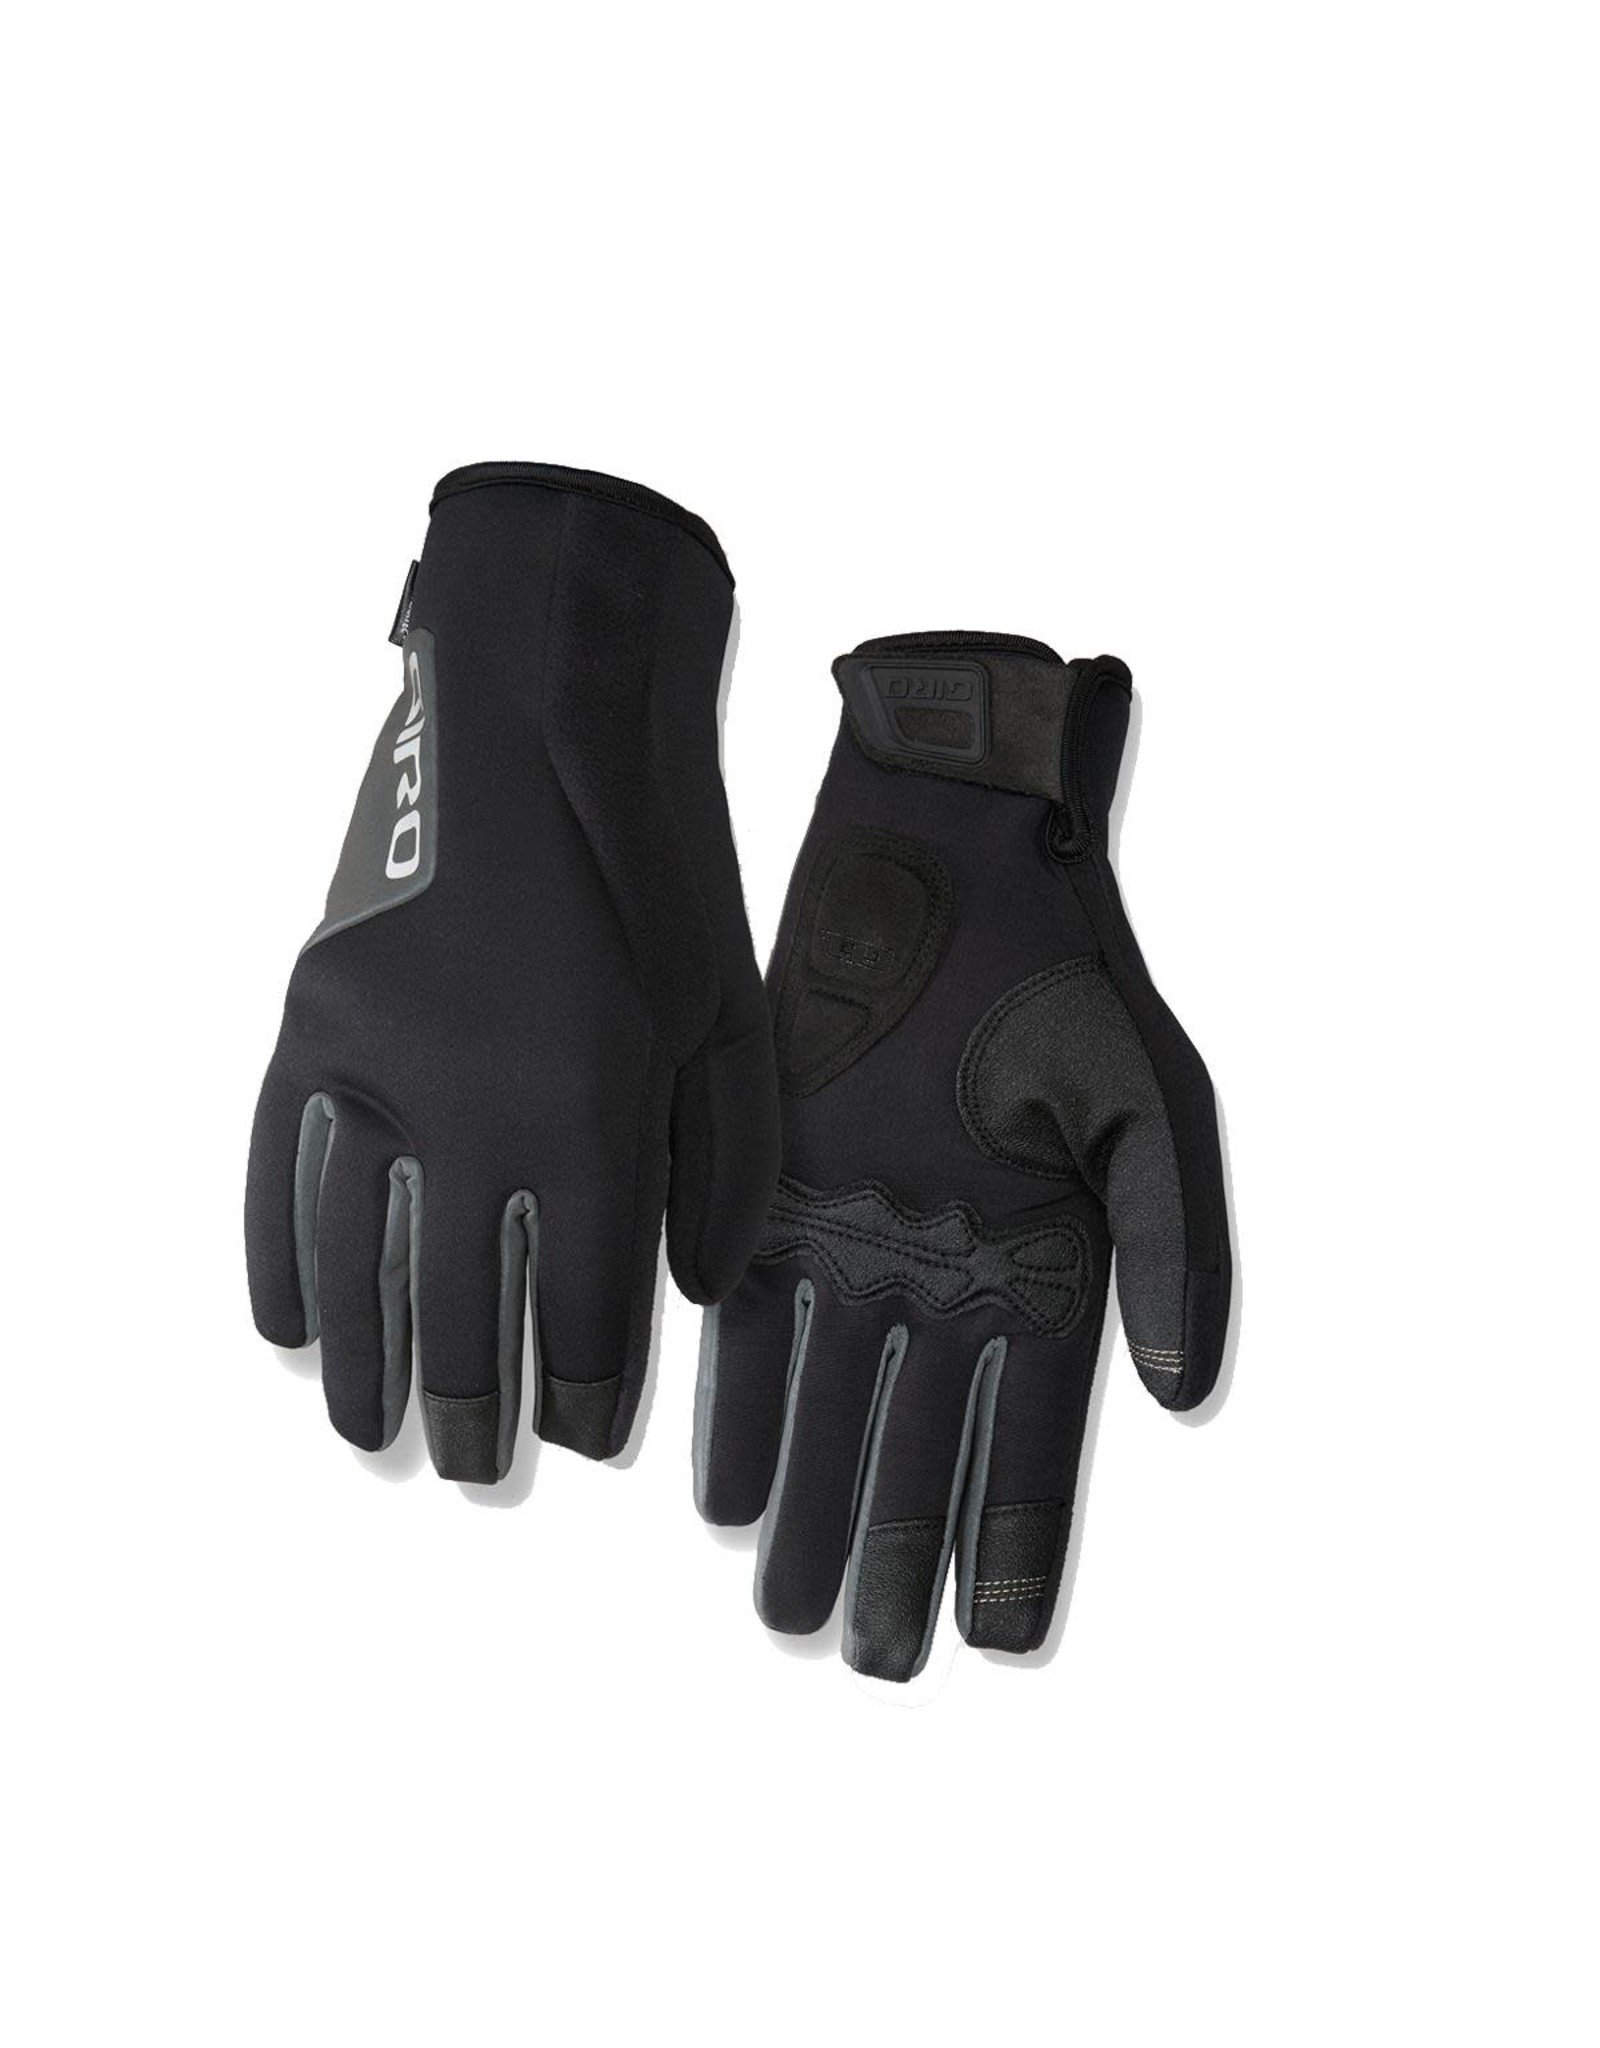 Giro GIRO AMBIENT 2.0 WATER RESISTANT INSULATED WINDBLOC CYCLING GLOVES 2017: BLACK L